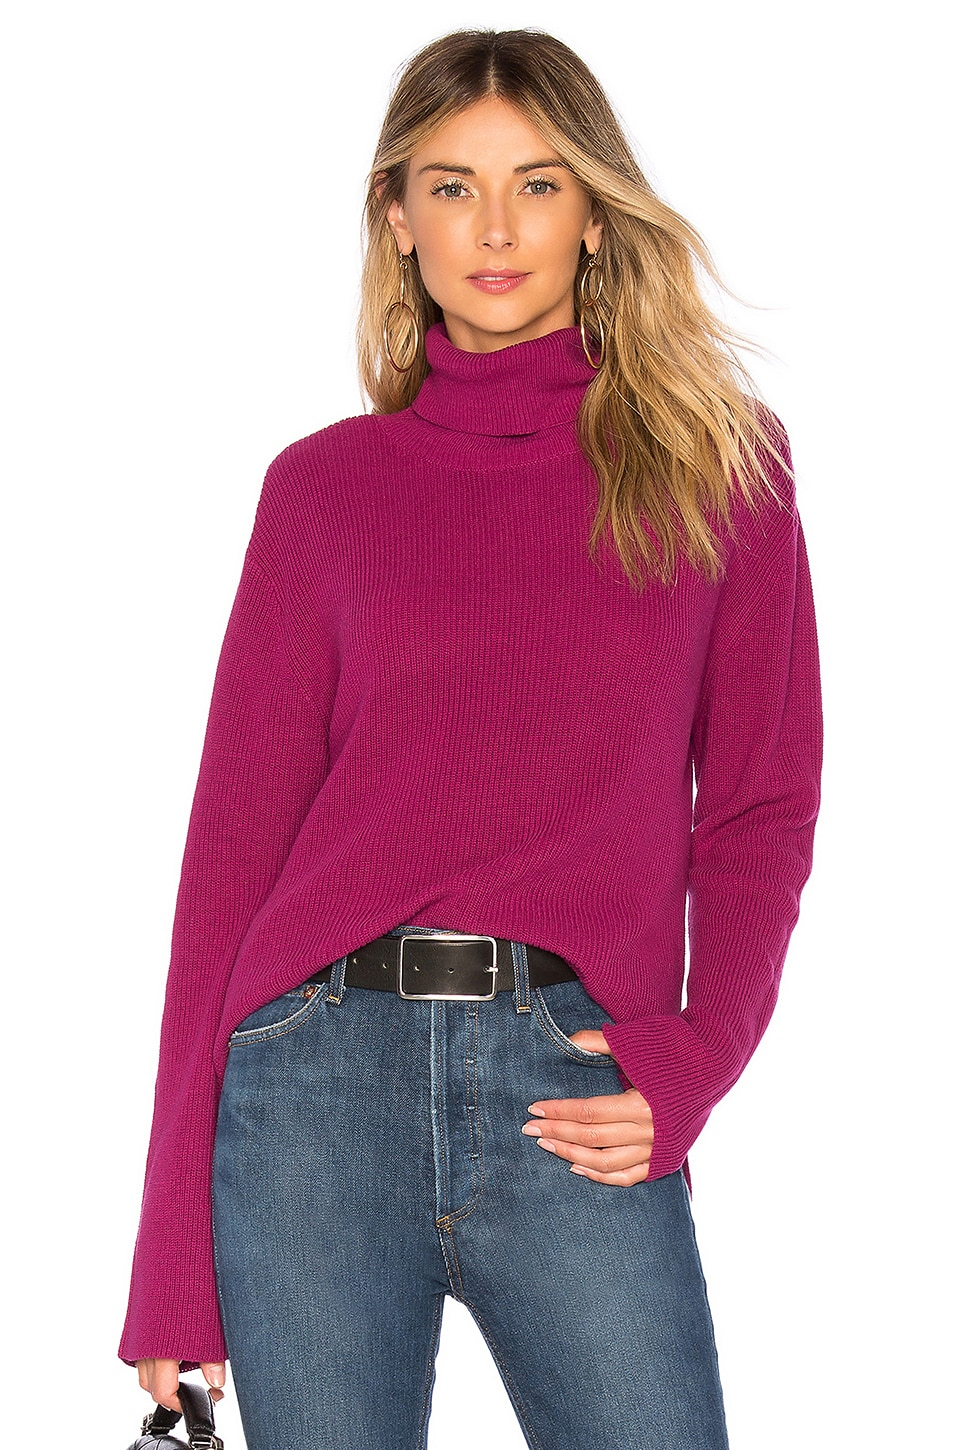 CALLAHAN X Revolve Turtleneck Sweater in Purple